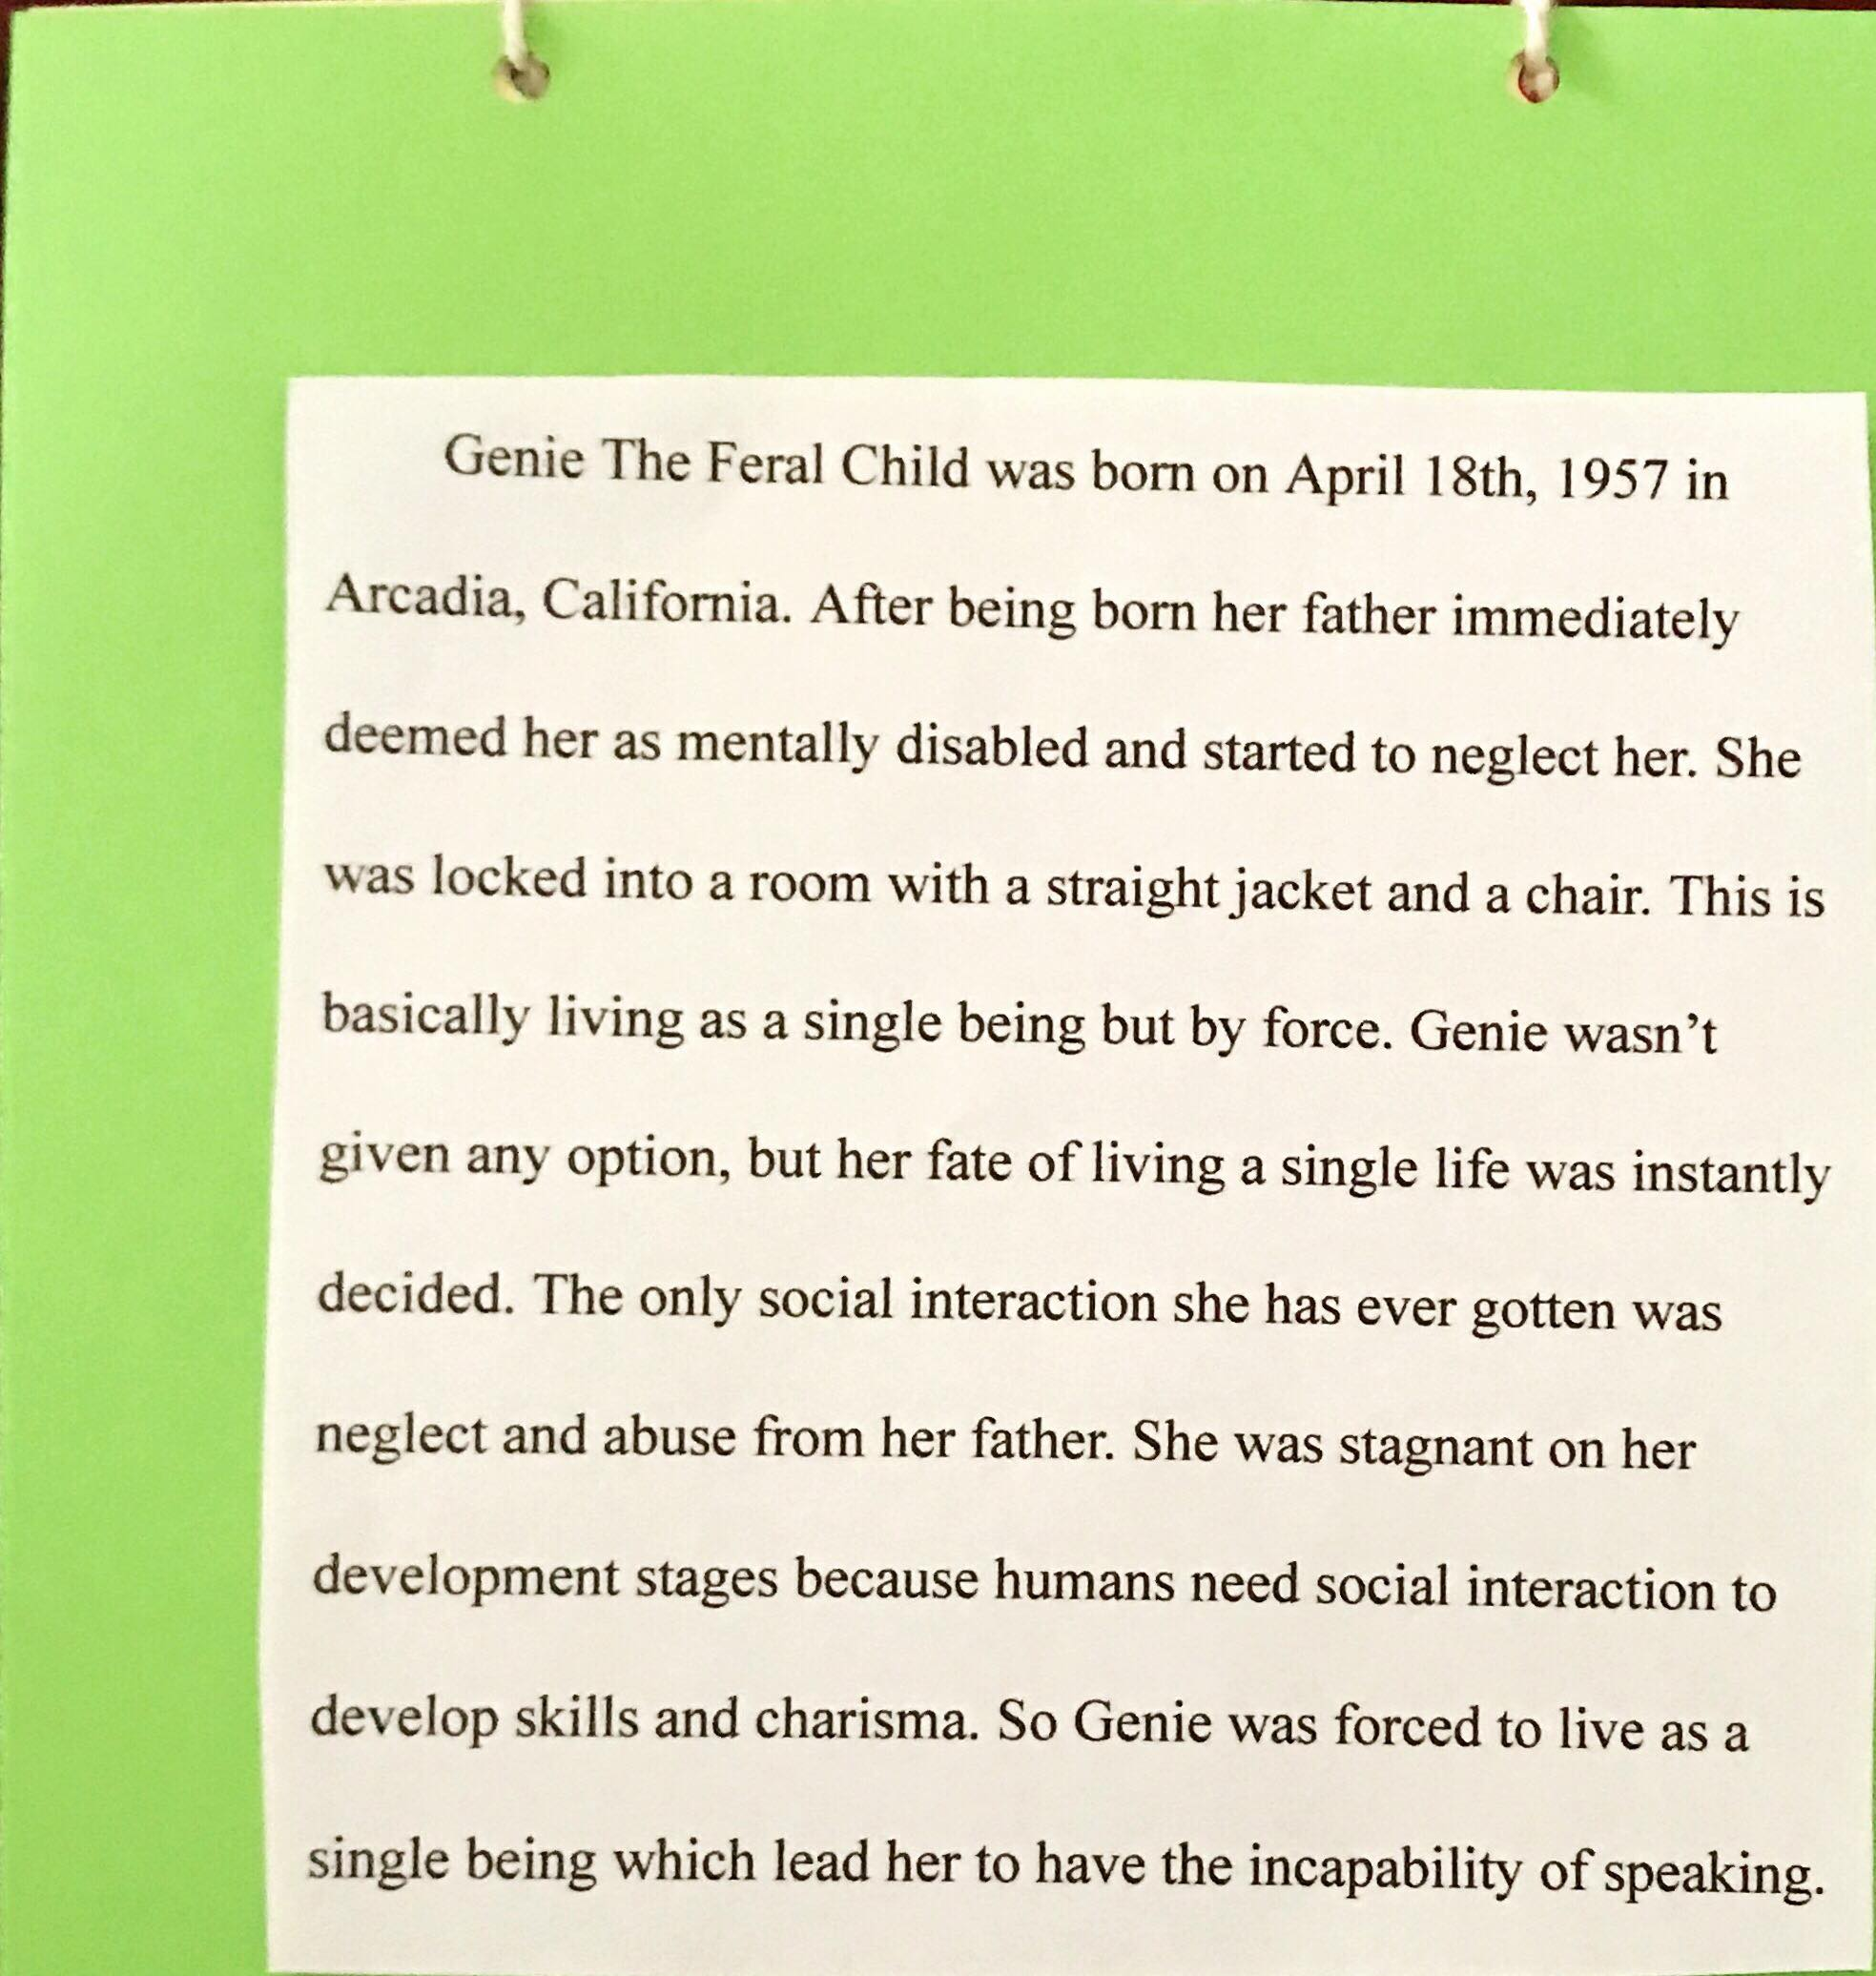 Page 11: Briefly talk about Genie the Feral Child